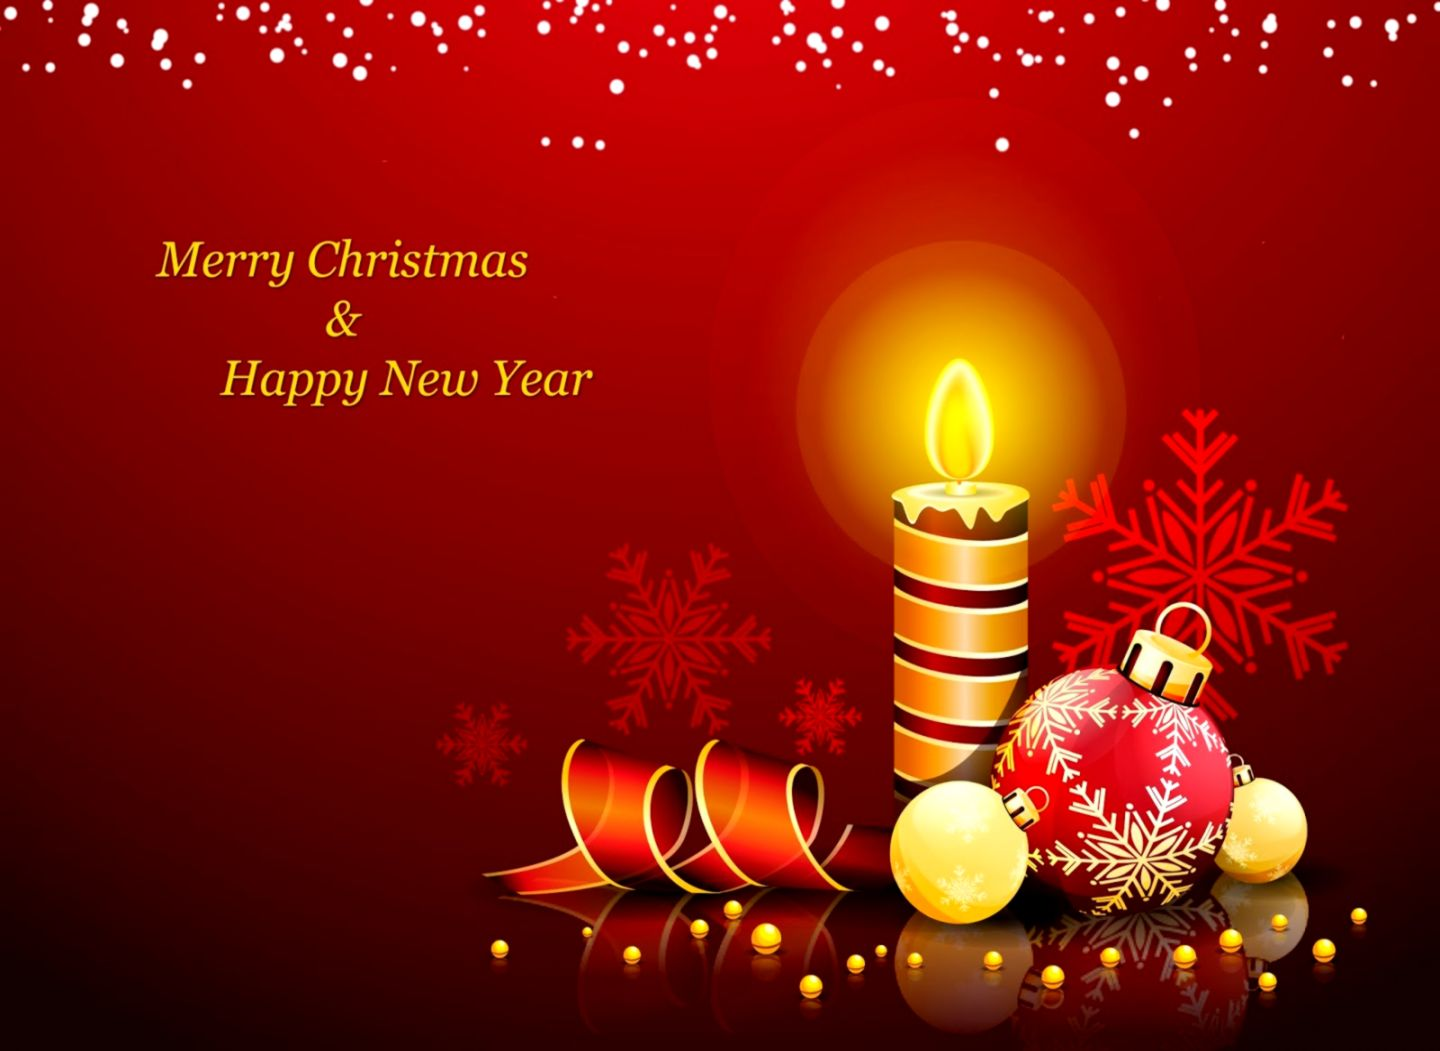 Happy New Year Greetings Card Wallpaper  Like Wallpapers